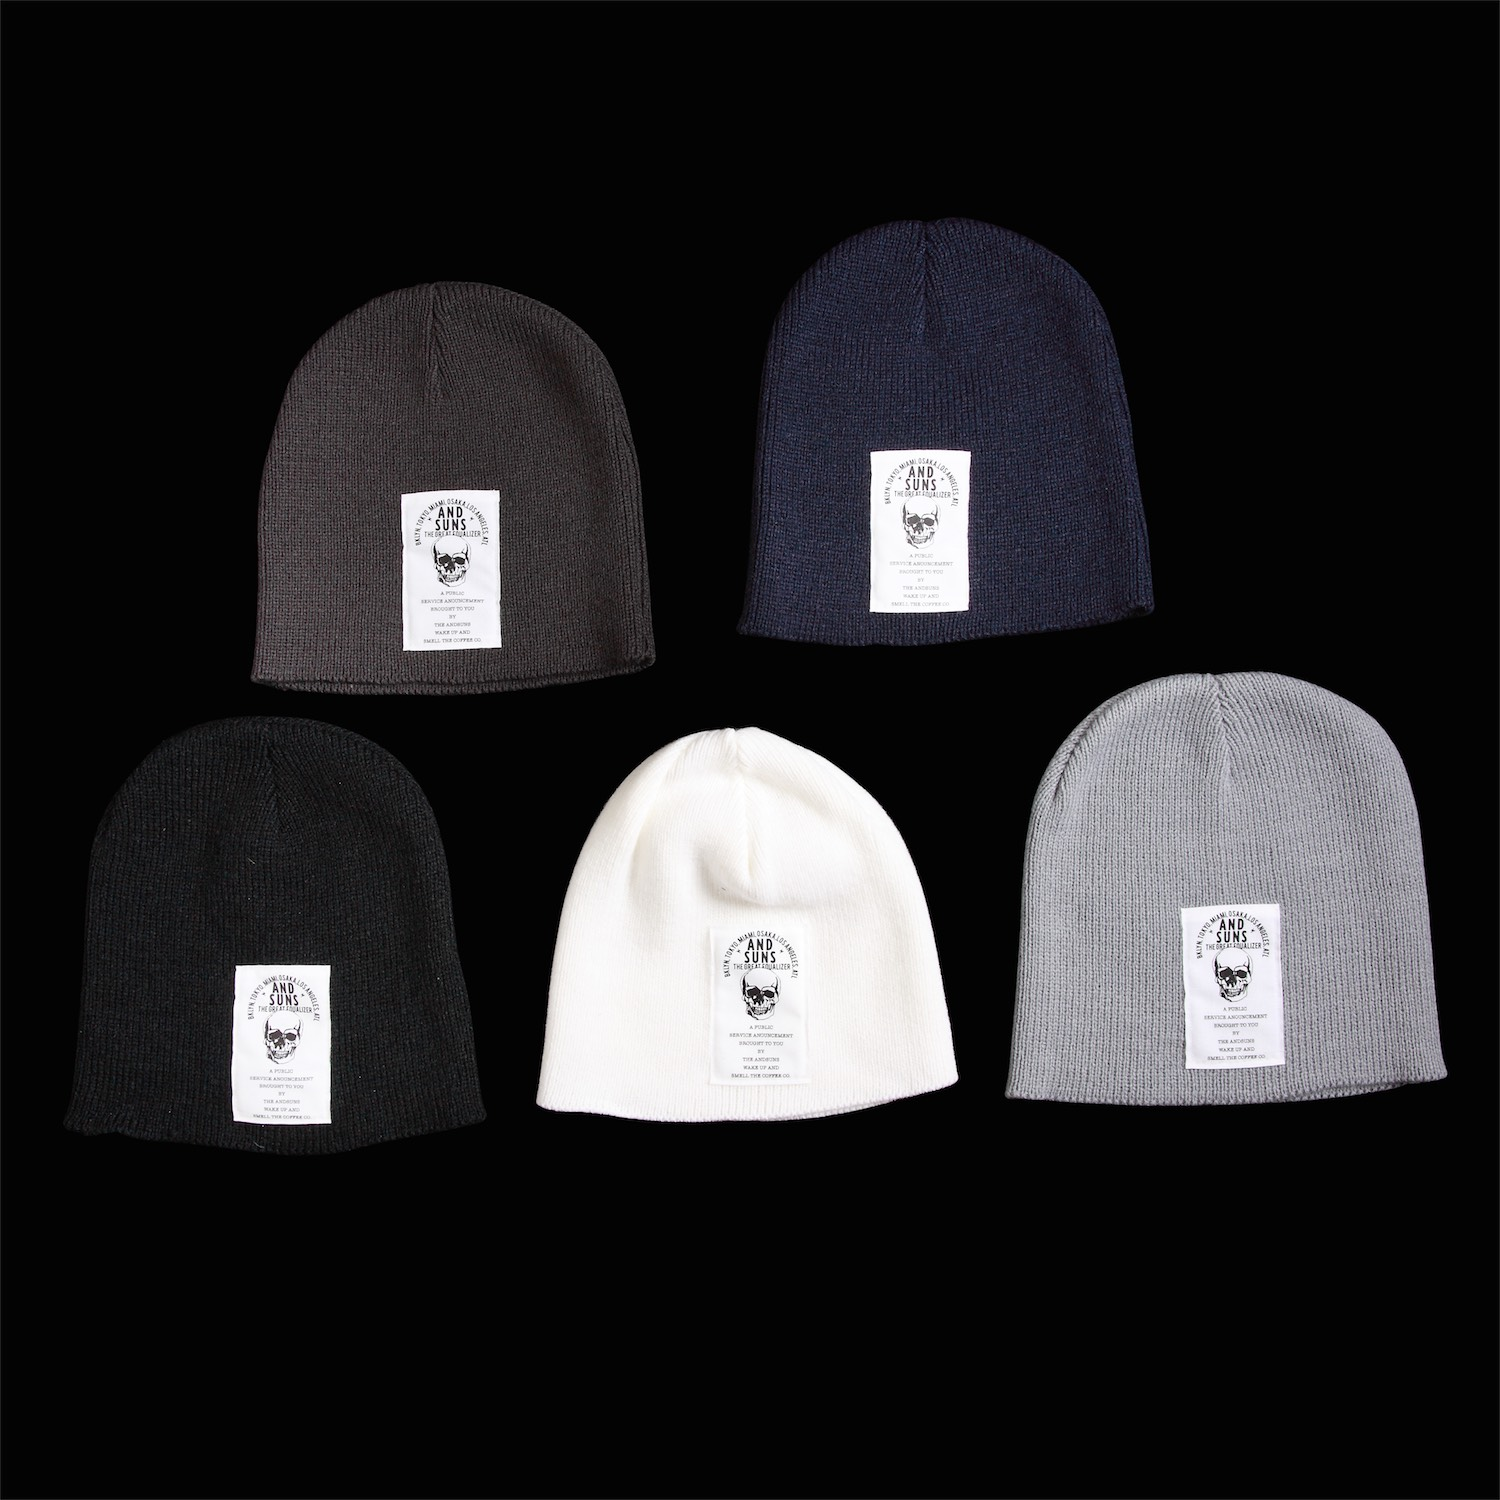 5c37f6a1 THE COFFEE CO. BEENIE: ¥ 2,160